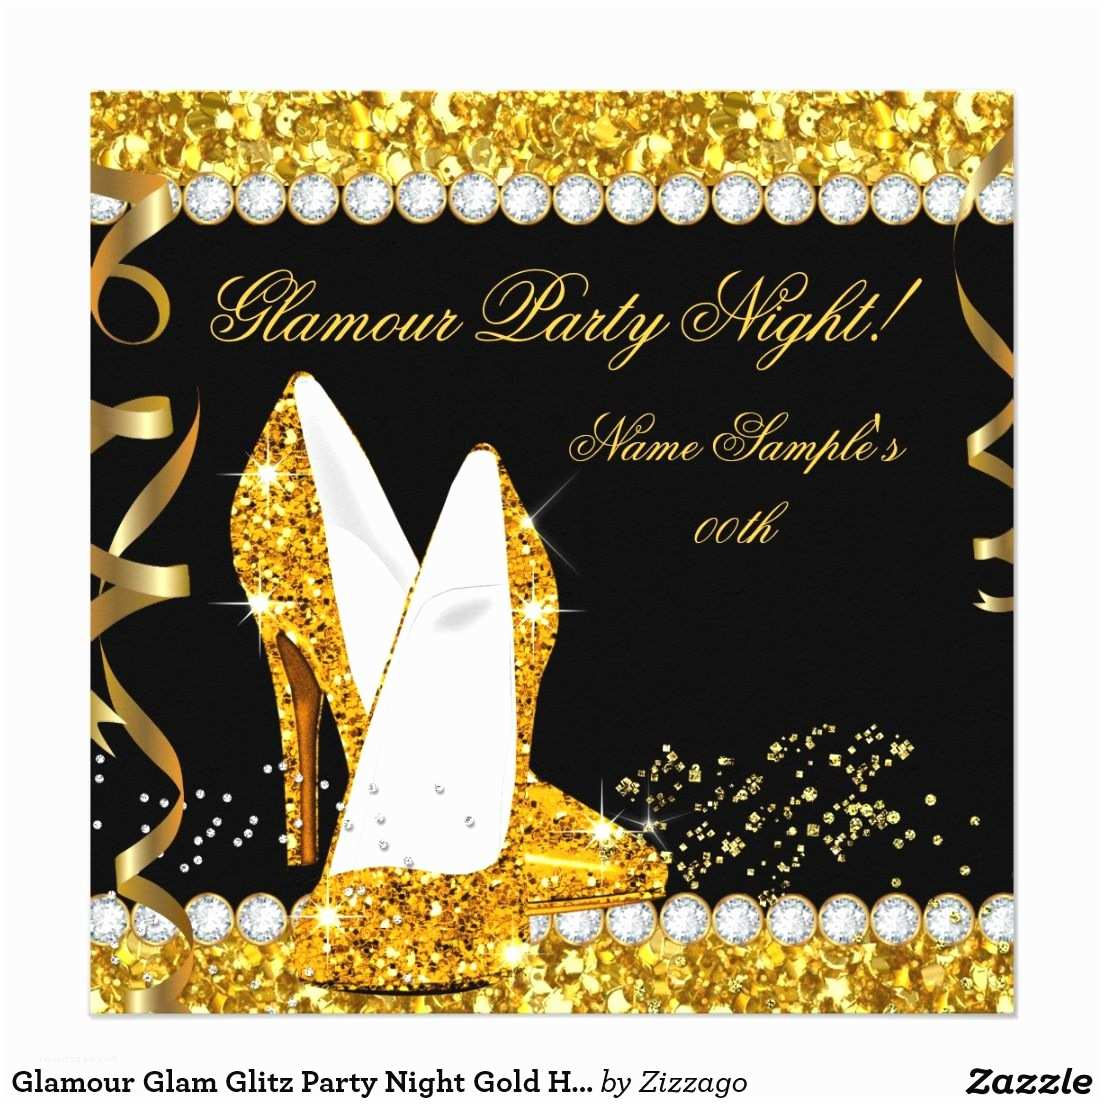 Glamorous Party Invitation Glamour Glam Glitz Party Night Gold High Heels Card